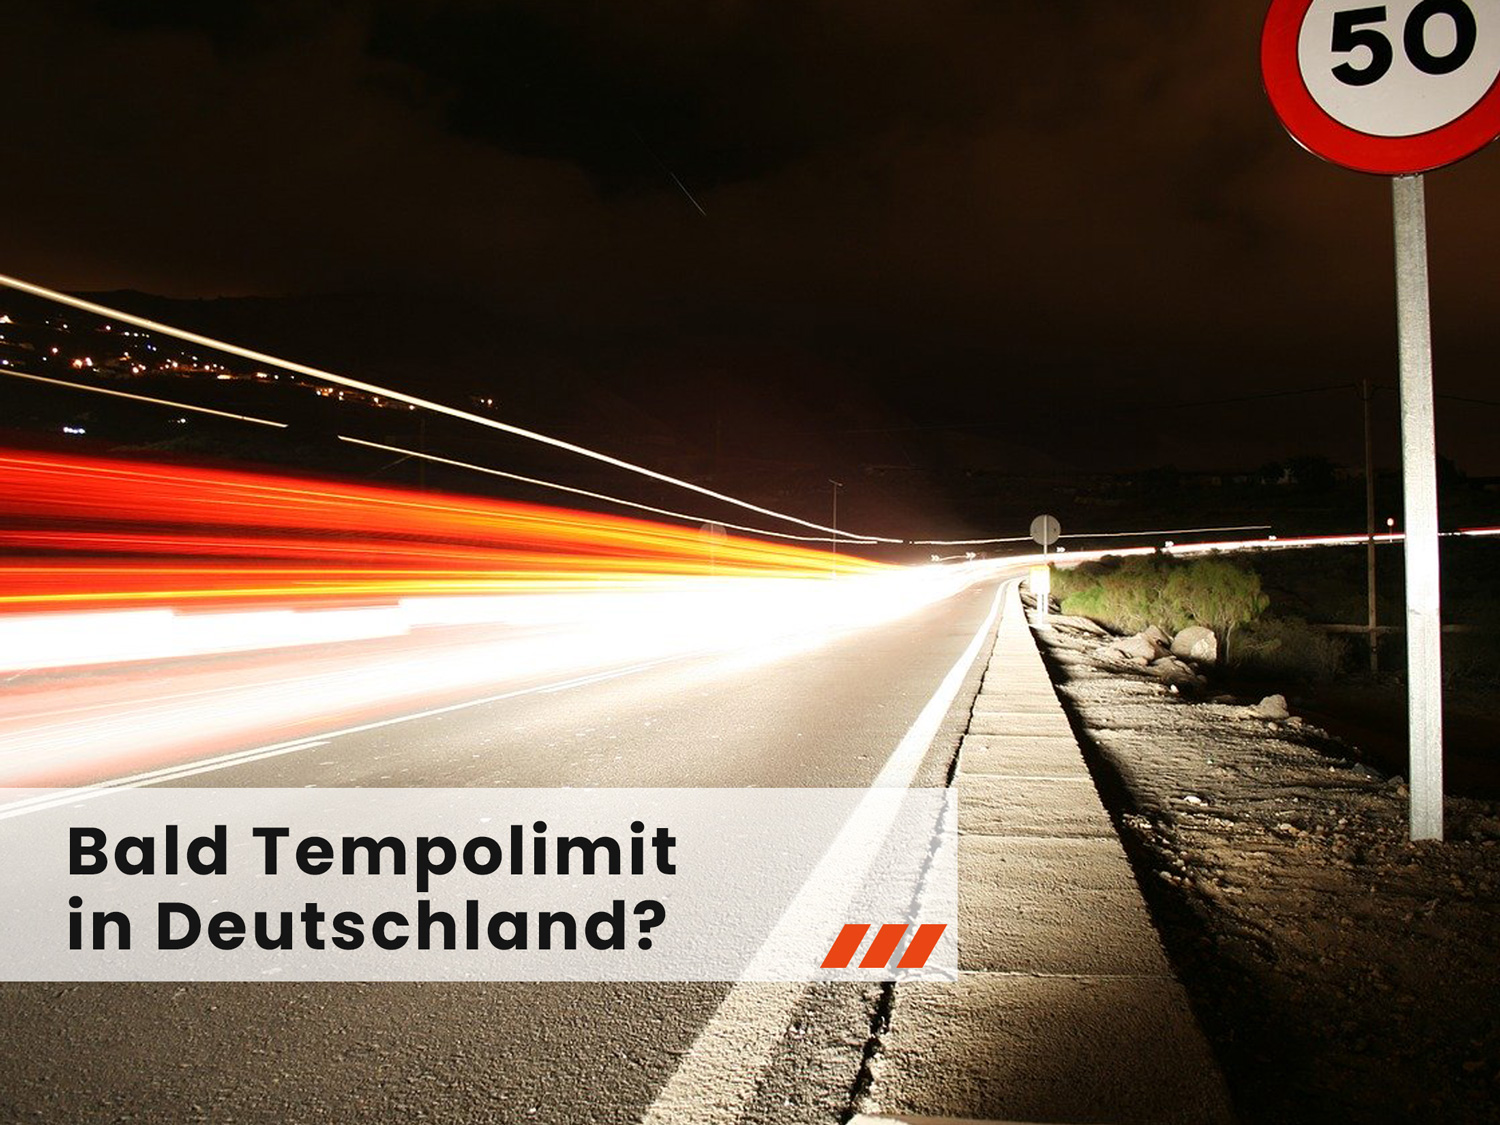 Tempolimit in Deutchland